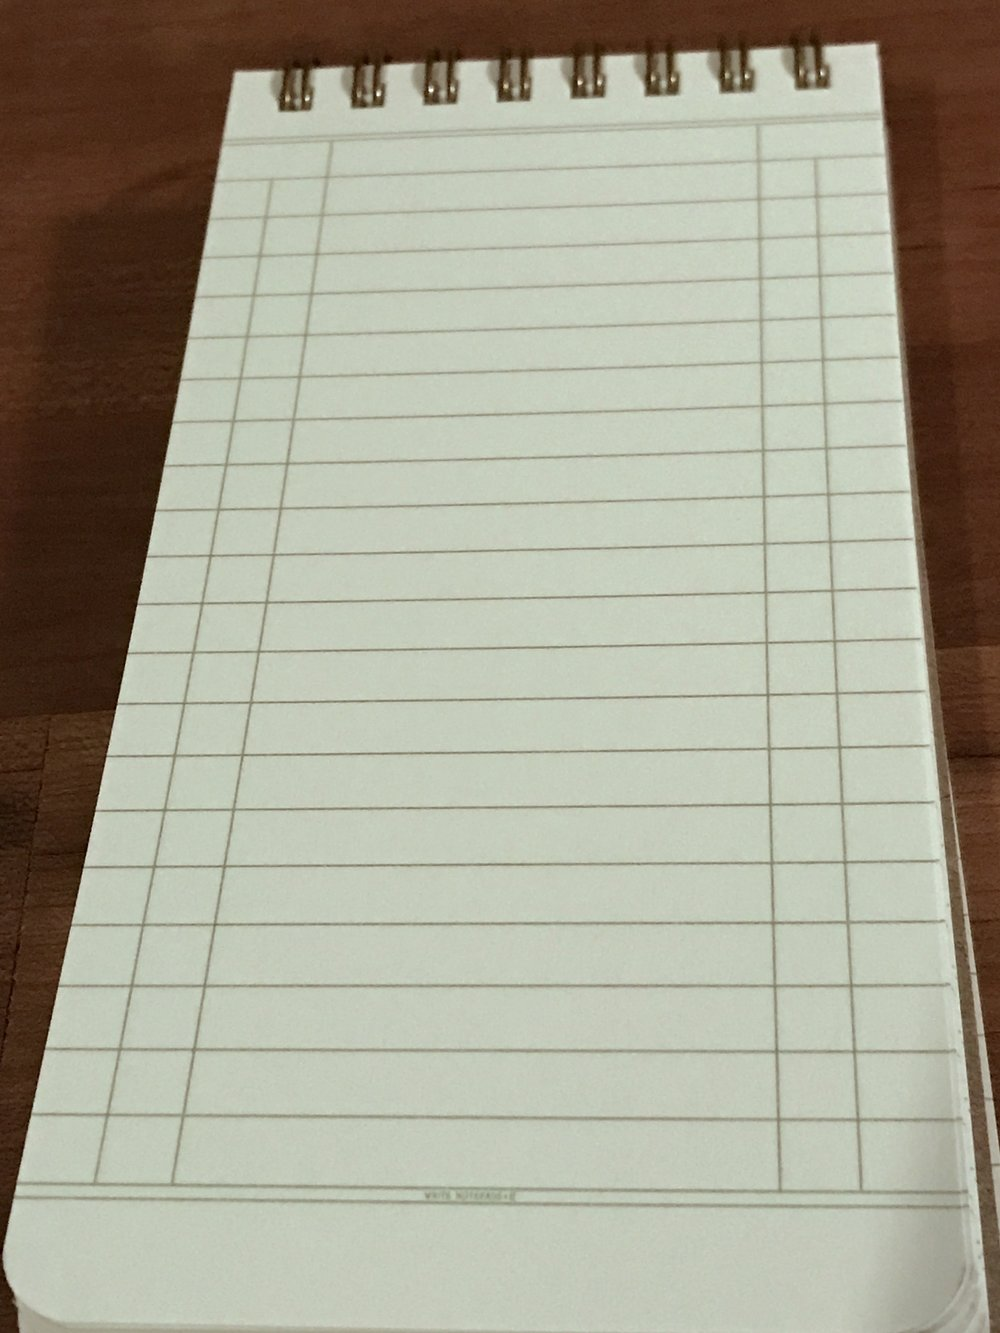 It says Write Notepads Co in teensy tiny little letters.